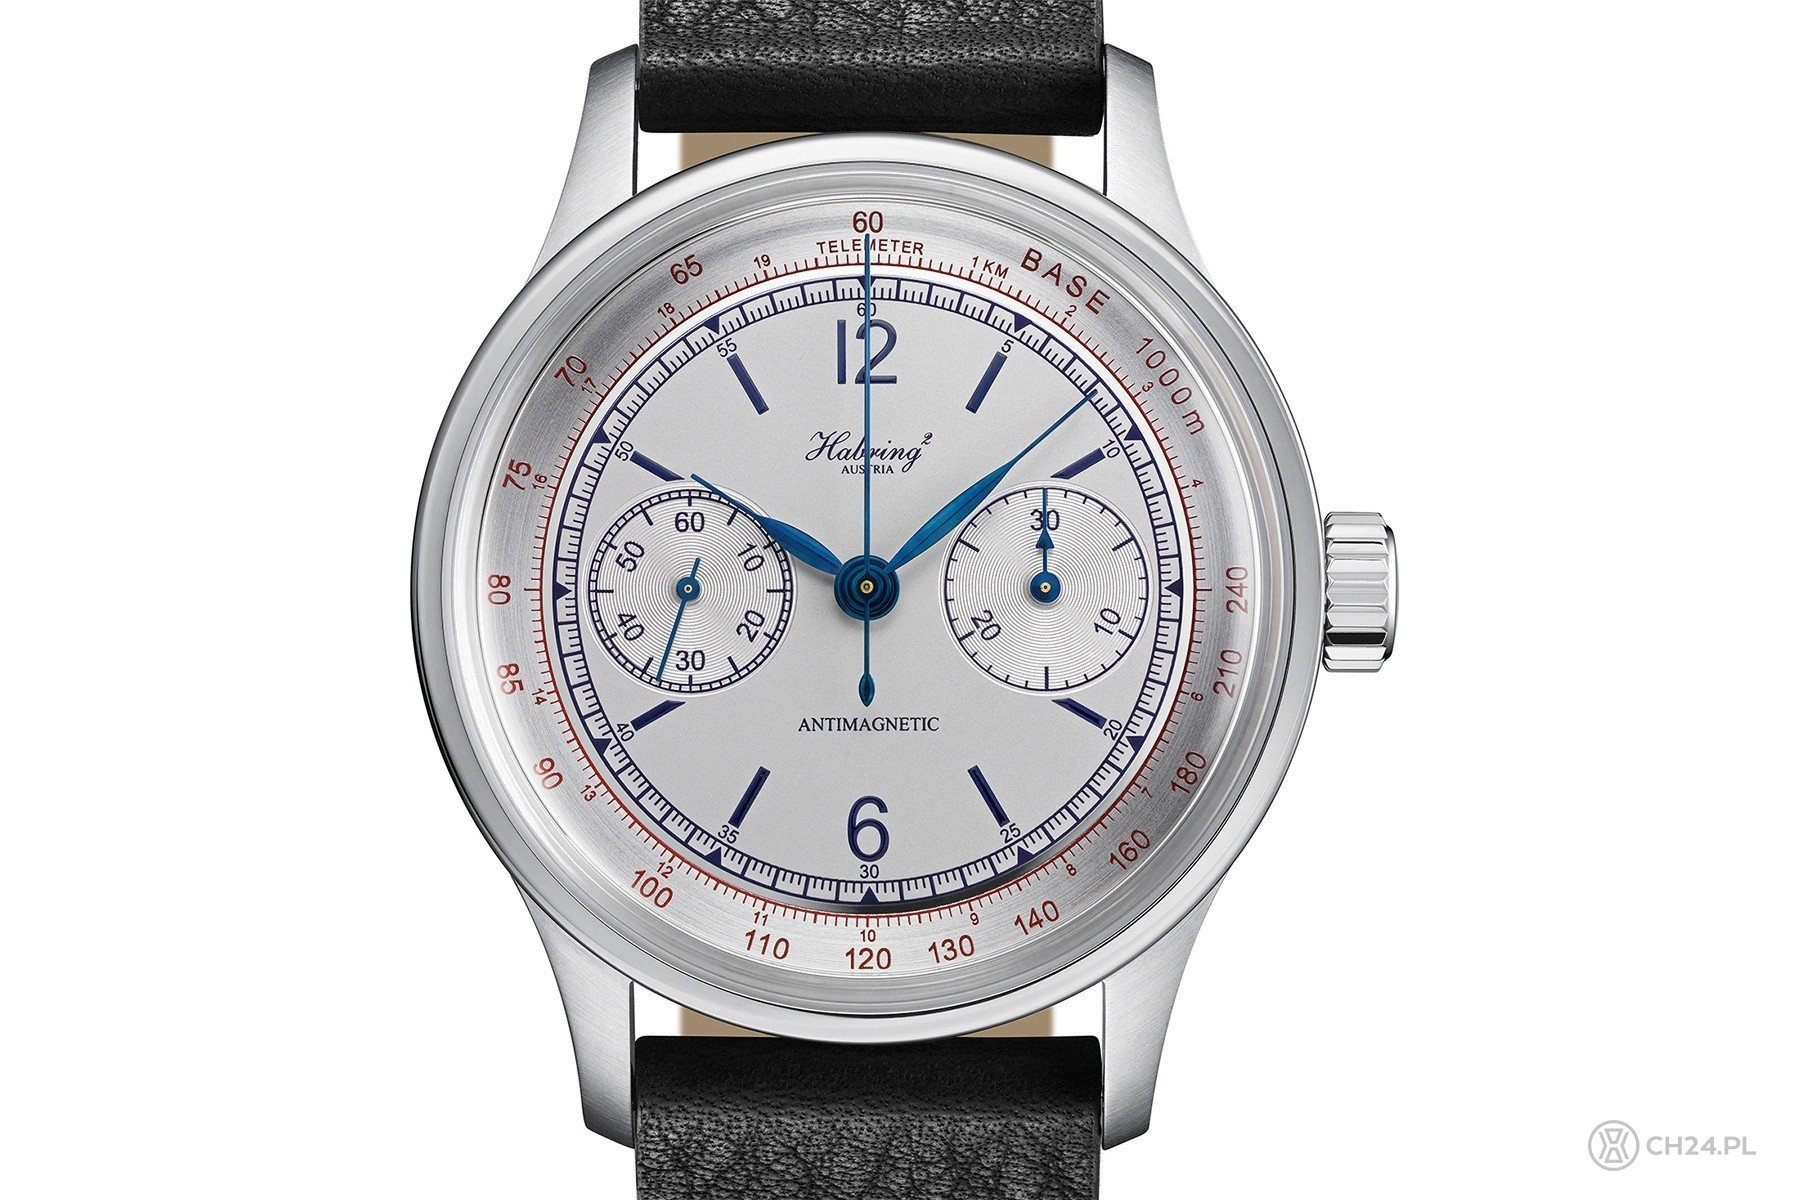 Habring² Chrono COS Timezone 20th Anniversary